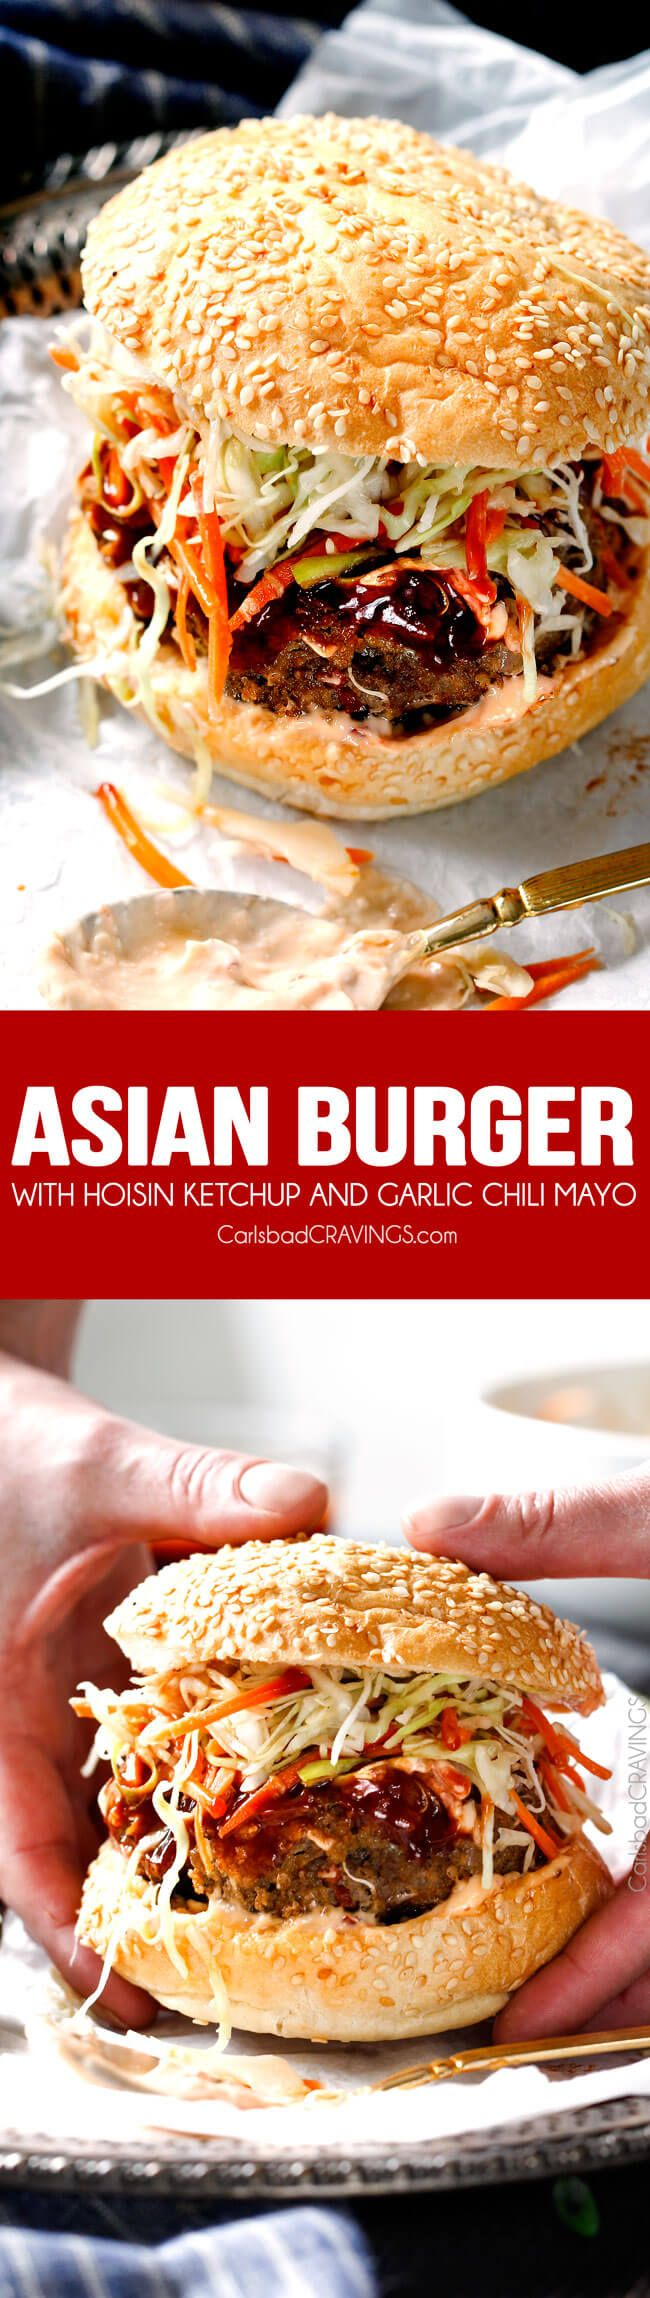 These crazy juicy Asian Burgers with hoisin ketchup & garlic chili mayo